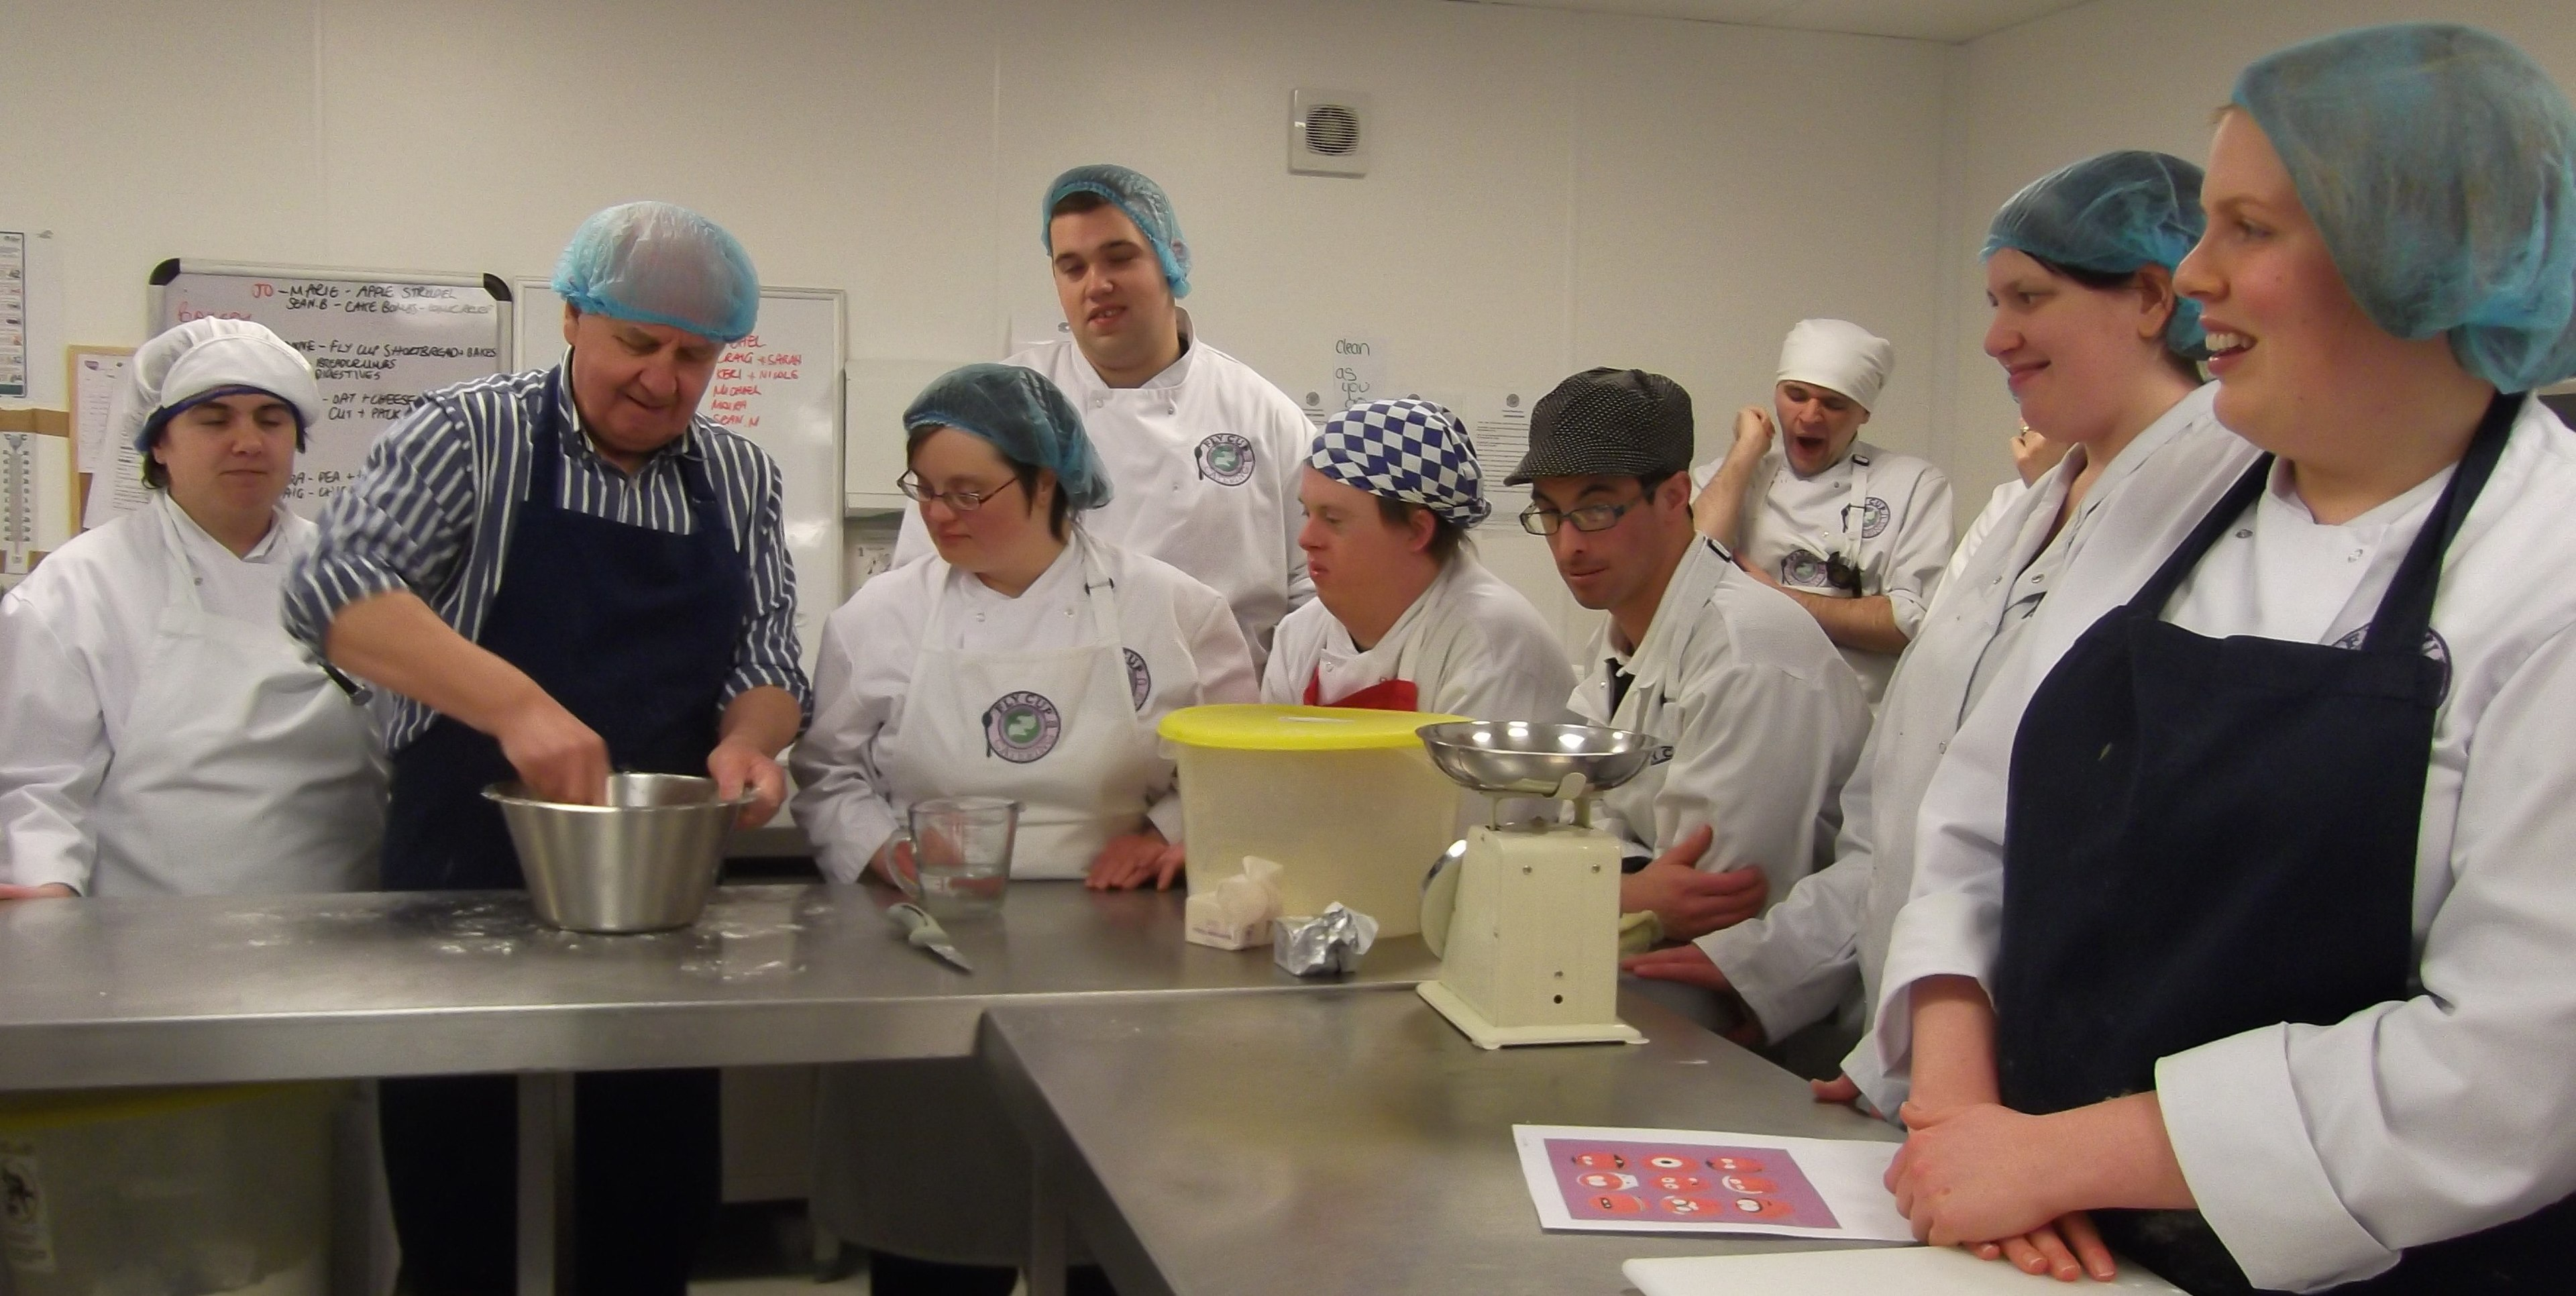 Fly Cup Catering trainees